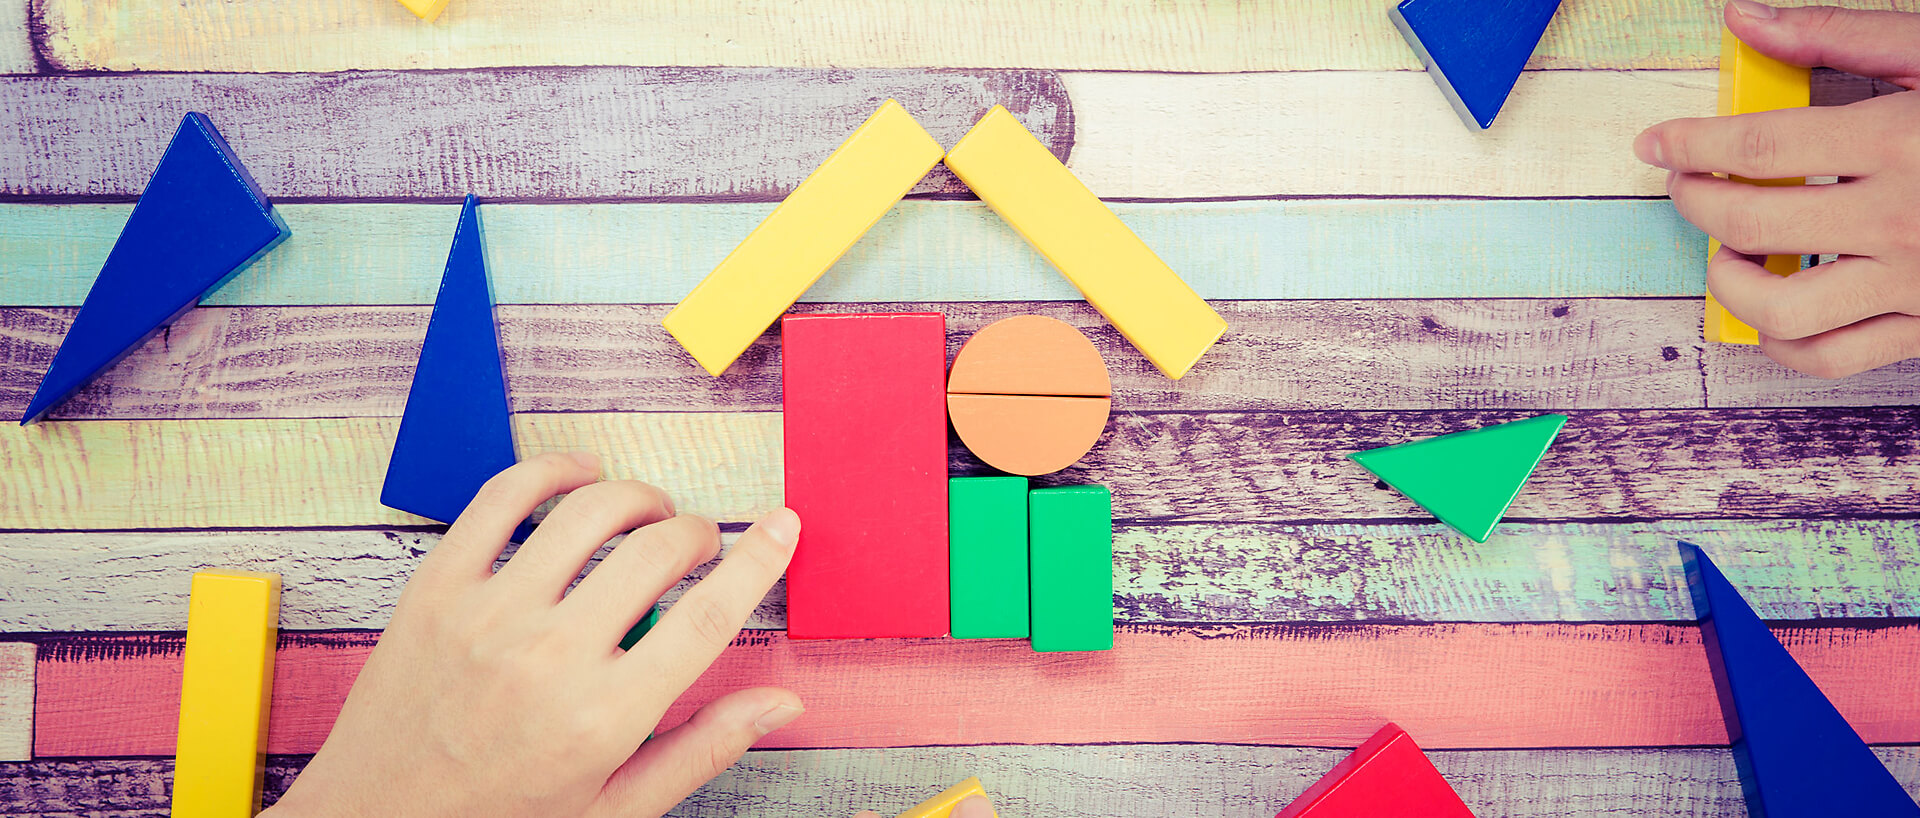 hands moving colourful building blocks into the shape of a house